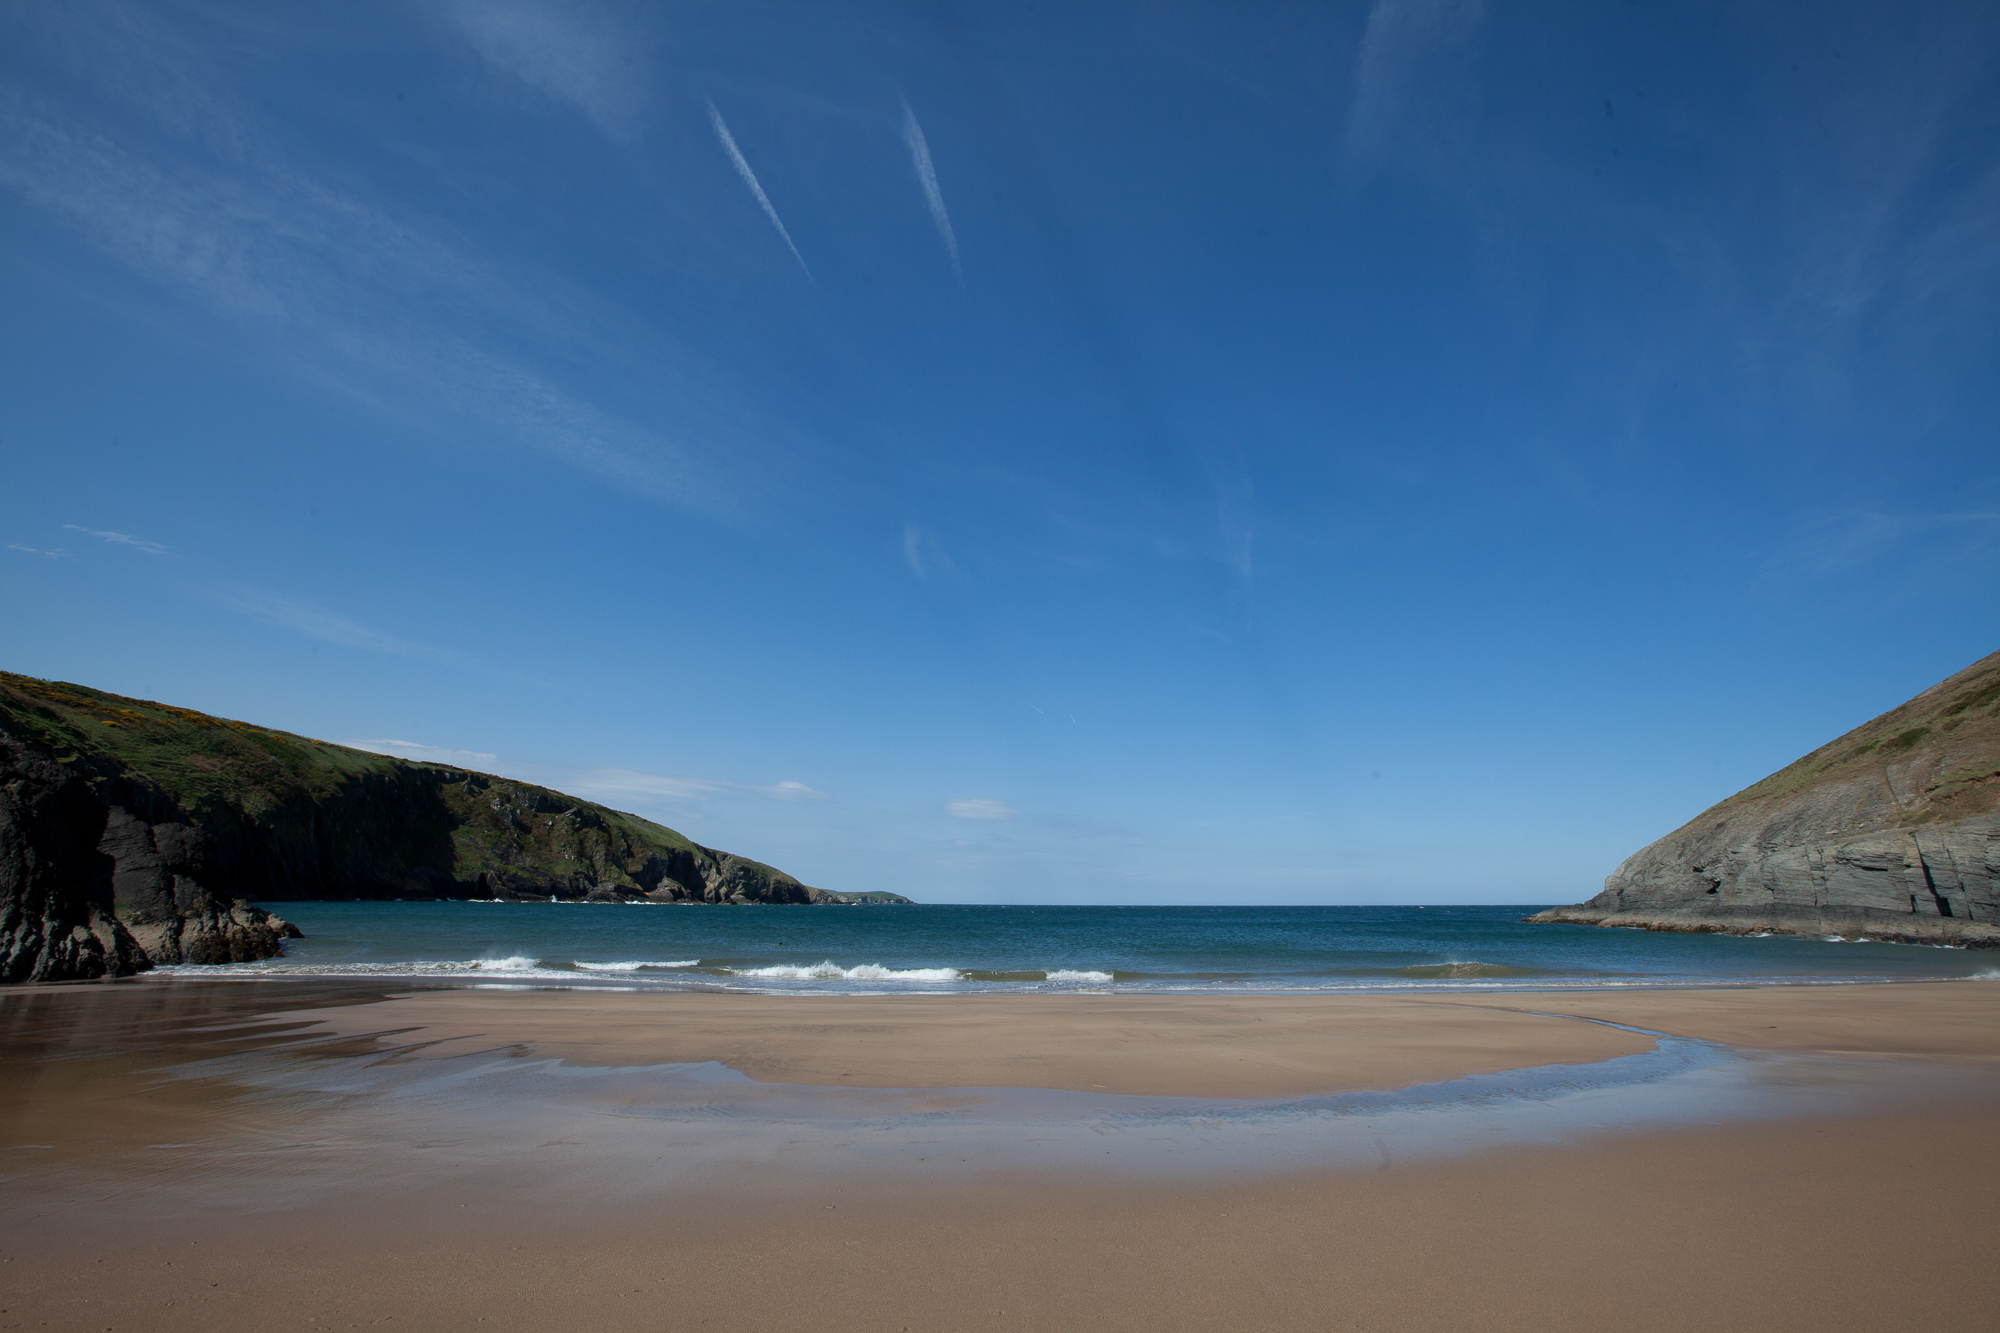 Mwnt Beach. West Wales. By Leonie Wise